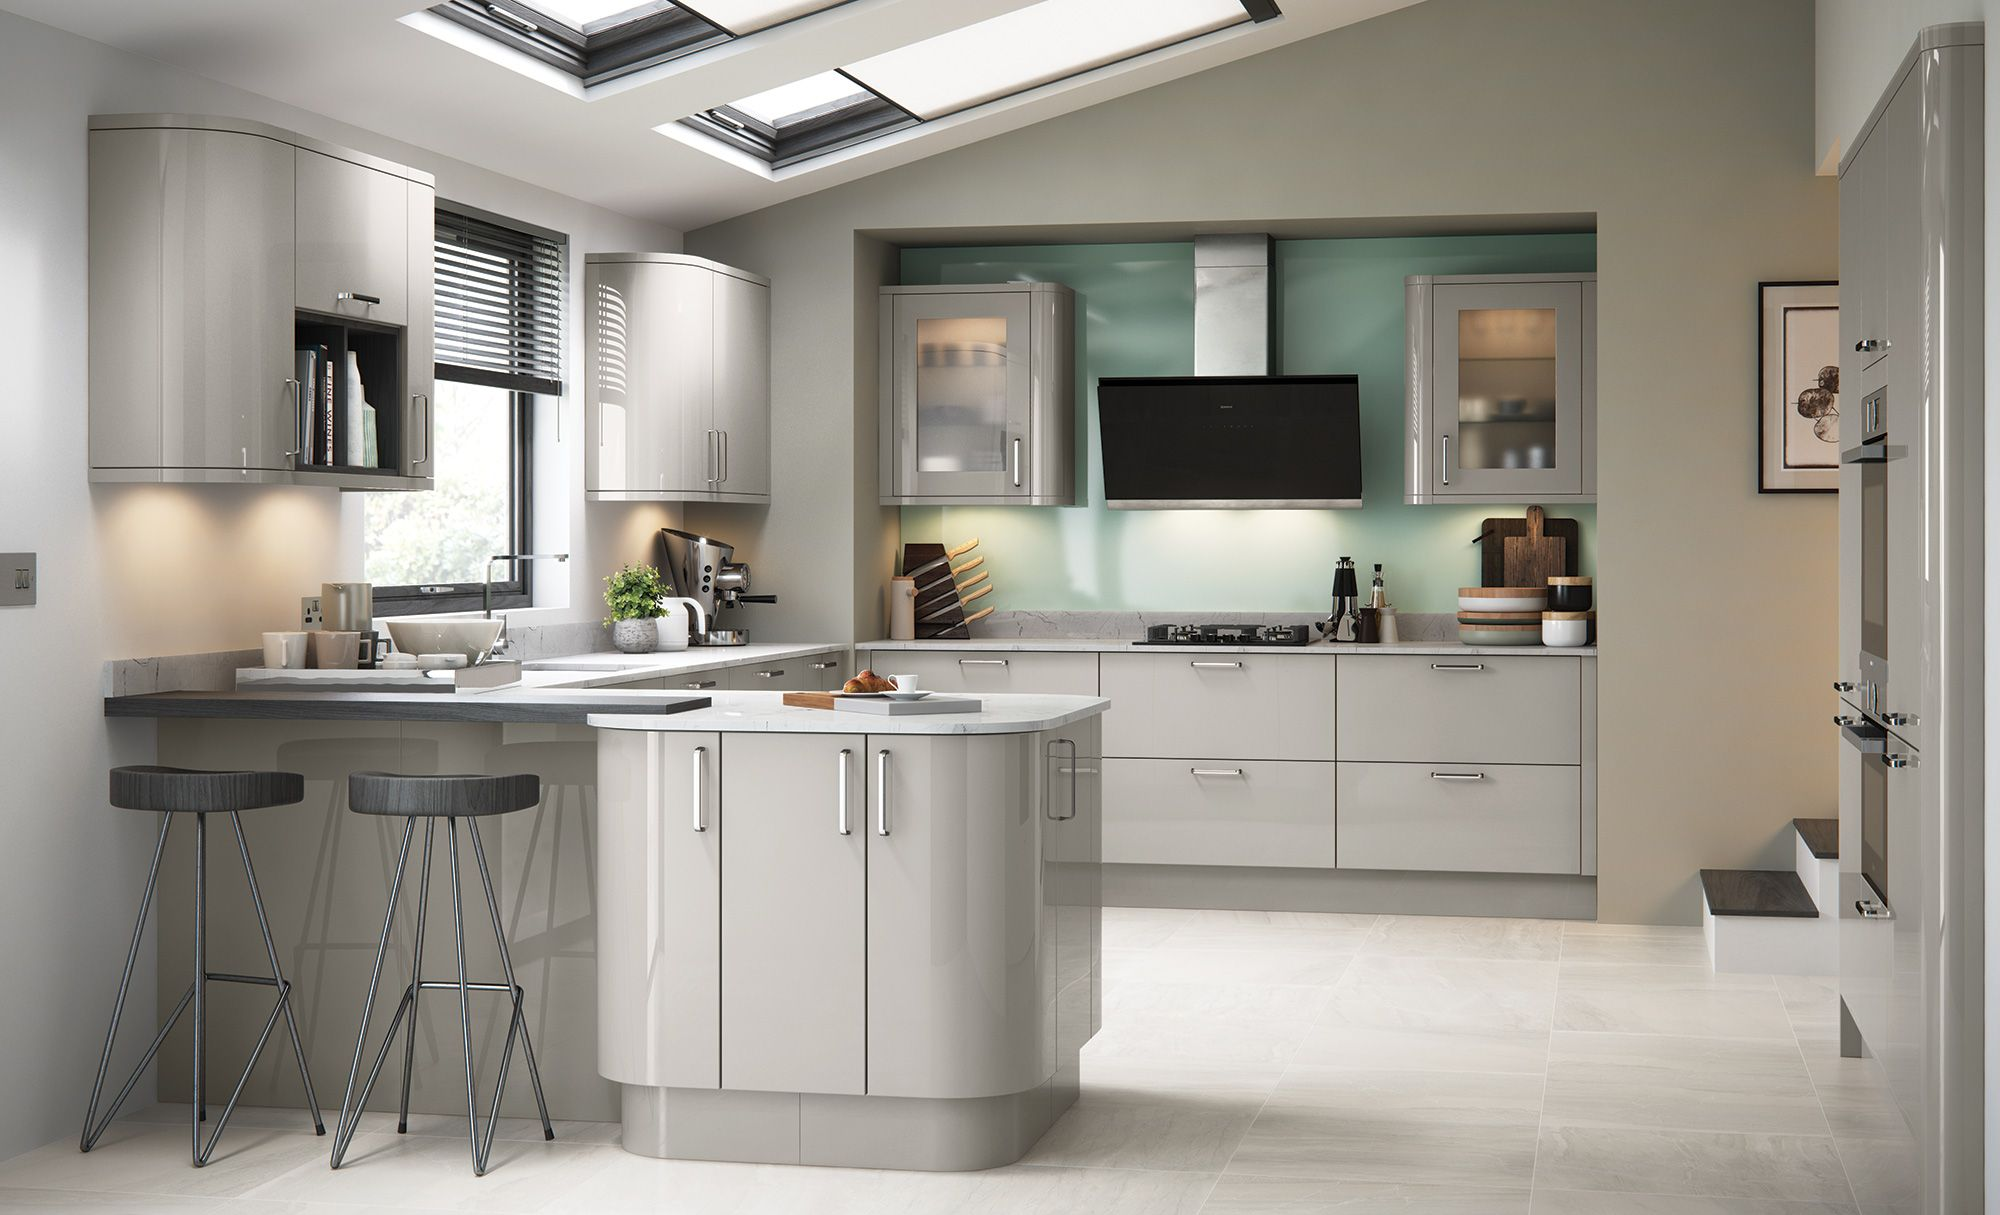 Grey kitchen modern kitchen london by lwk kitchens london - Explore Gloss Kitchen Fitted Kitchens And More